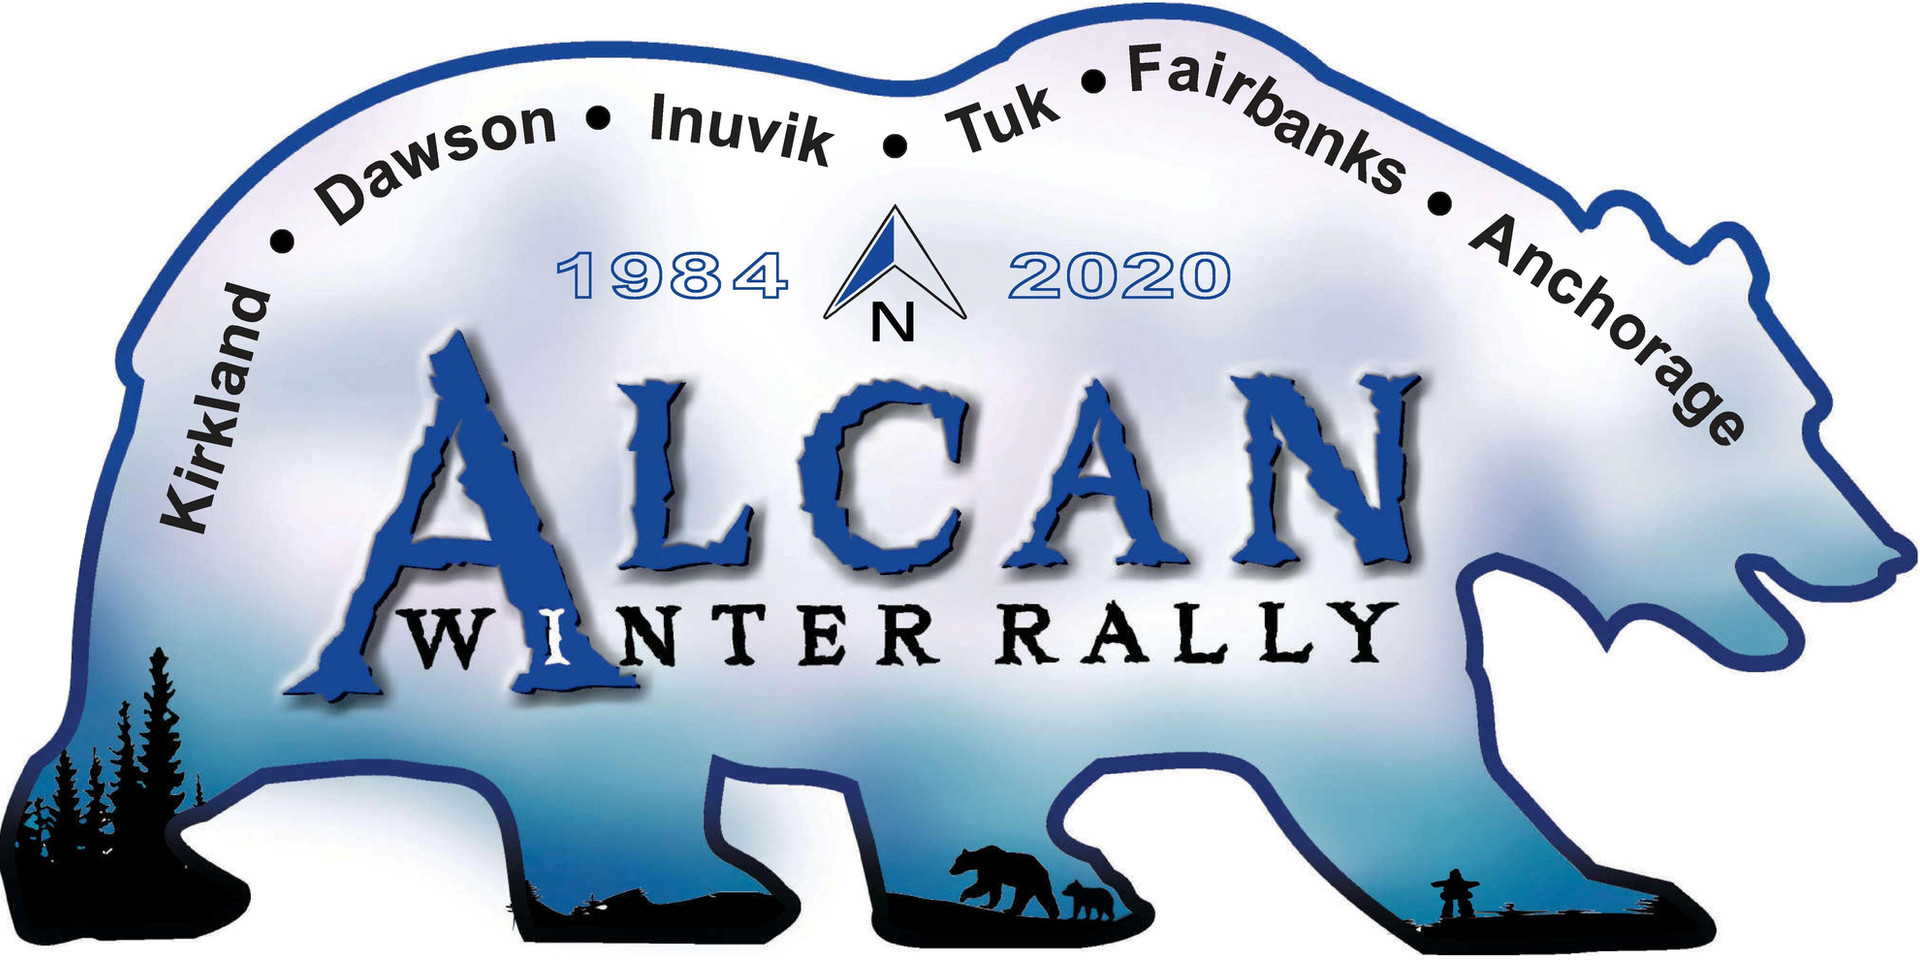 Design for a replica of Canada Northwest Territories License plate for this rally.